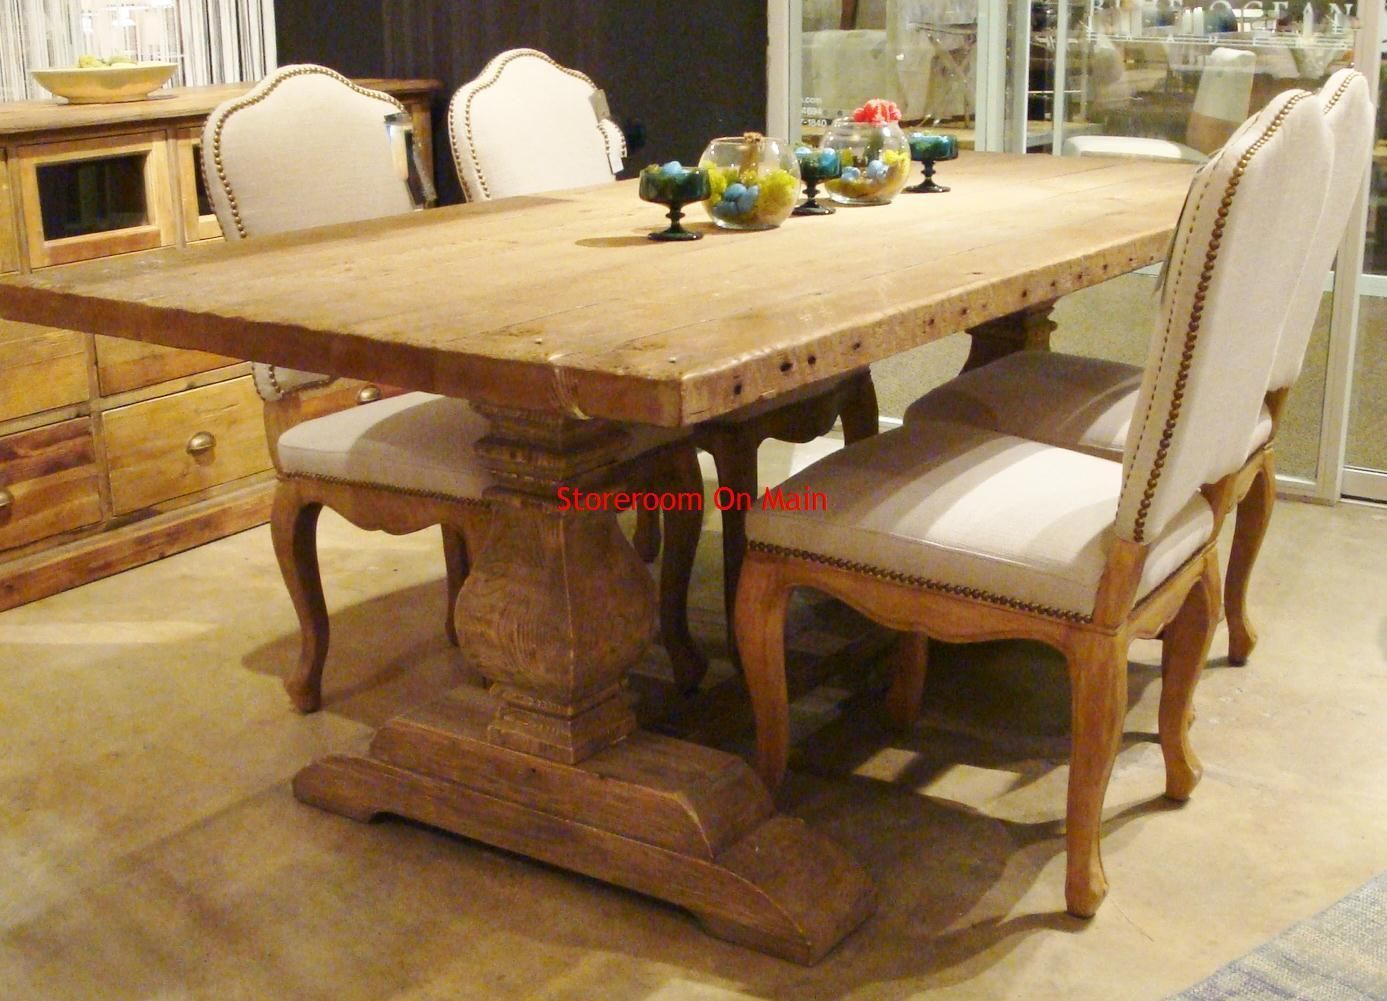 Reclaimed Wood Dining Table Bleached Pine Reclaimed Wood Trestle